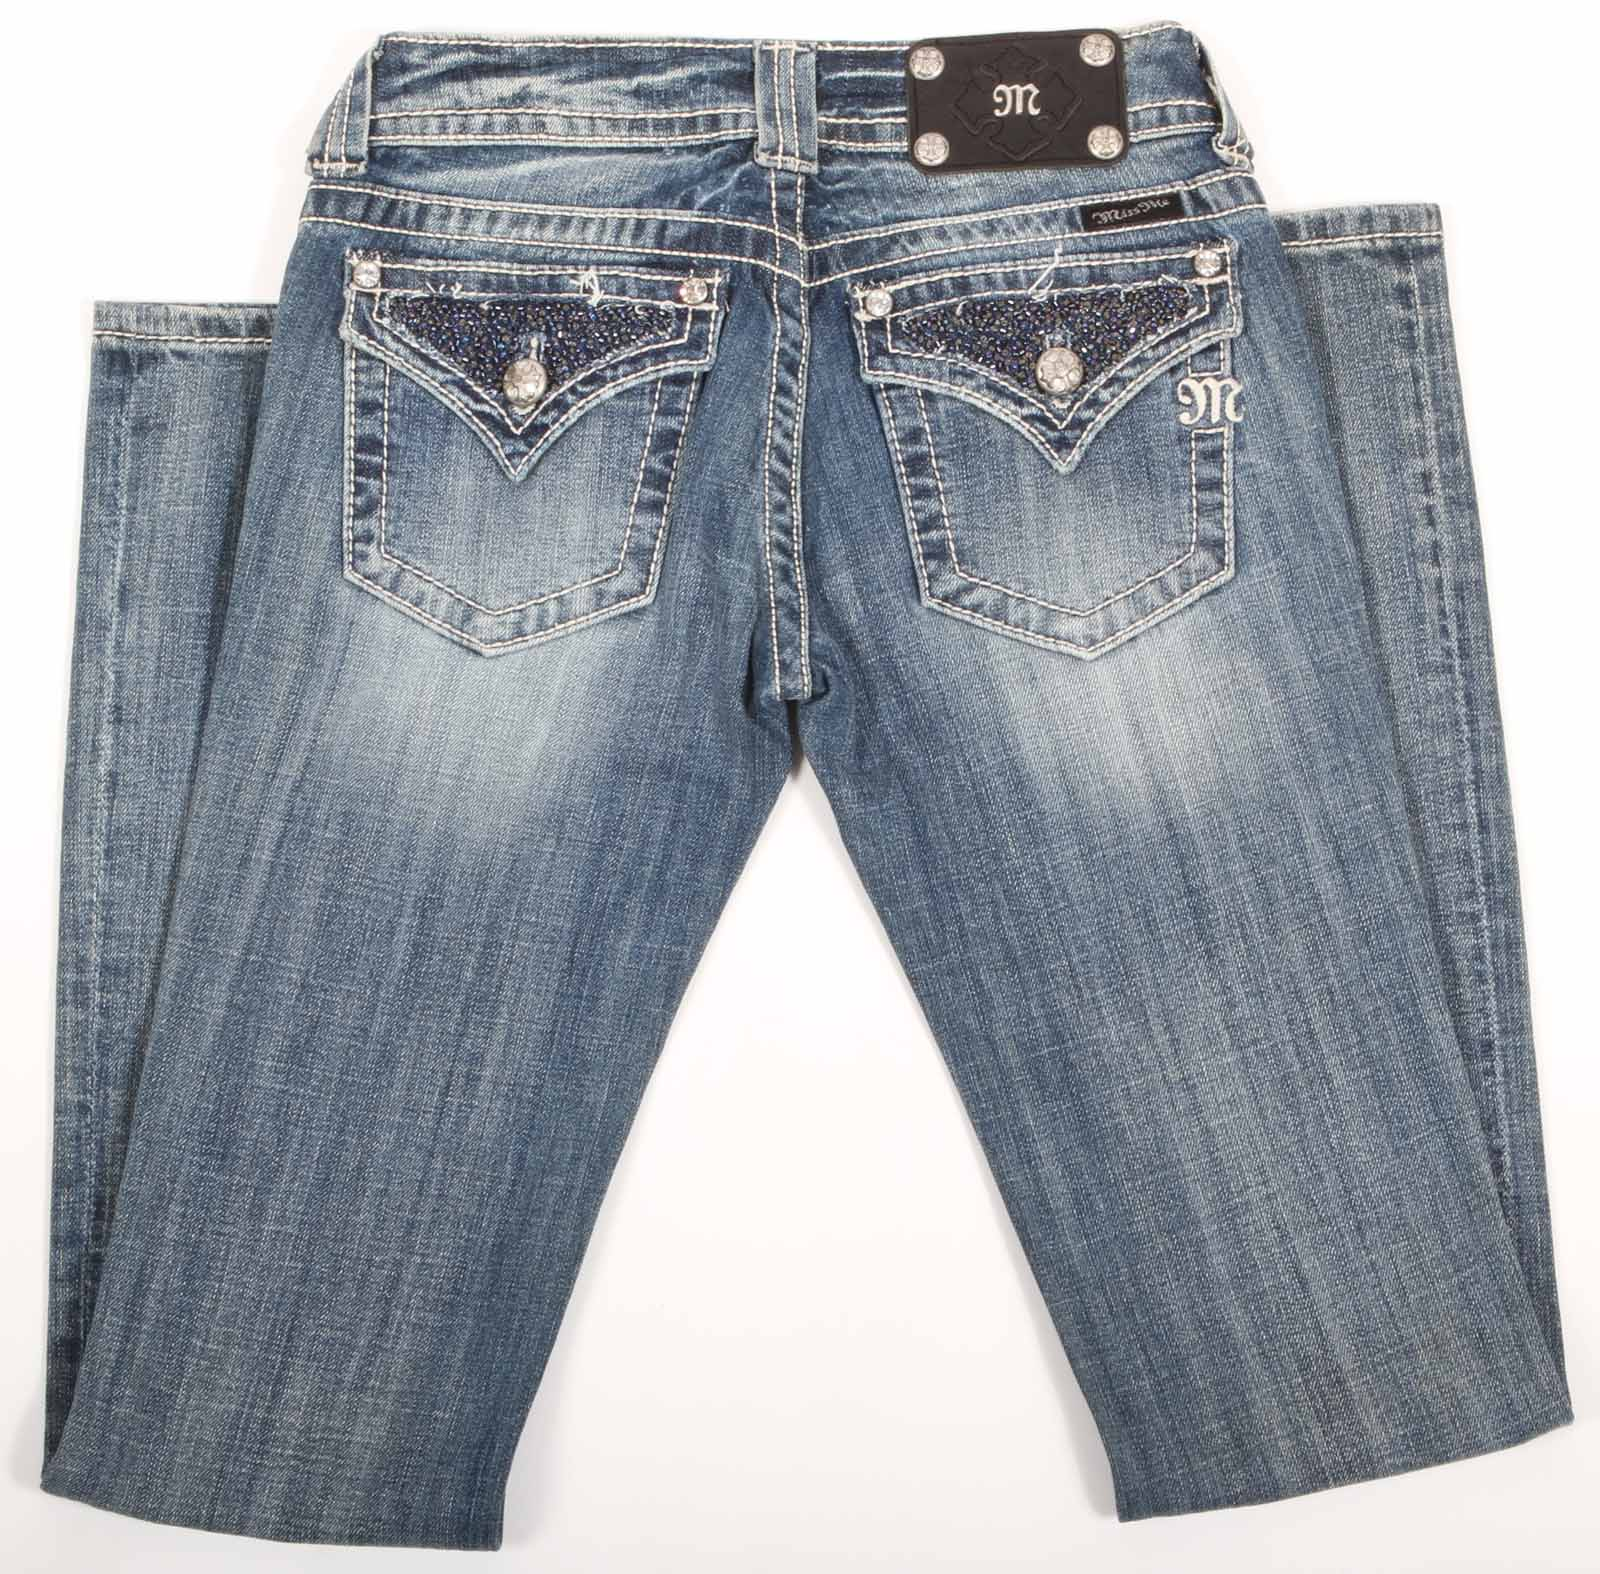 Miss Womens taille taille taille haute Jean Jp5171b2 Me haute haute haute taille rCw6Srq